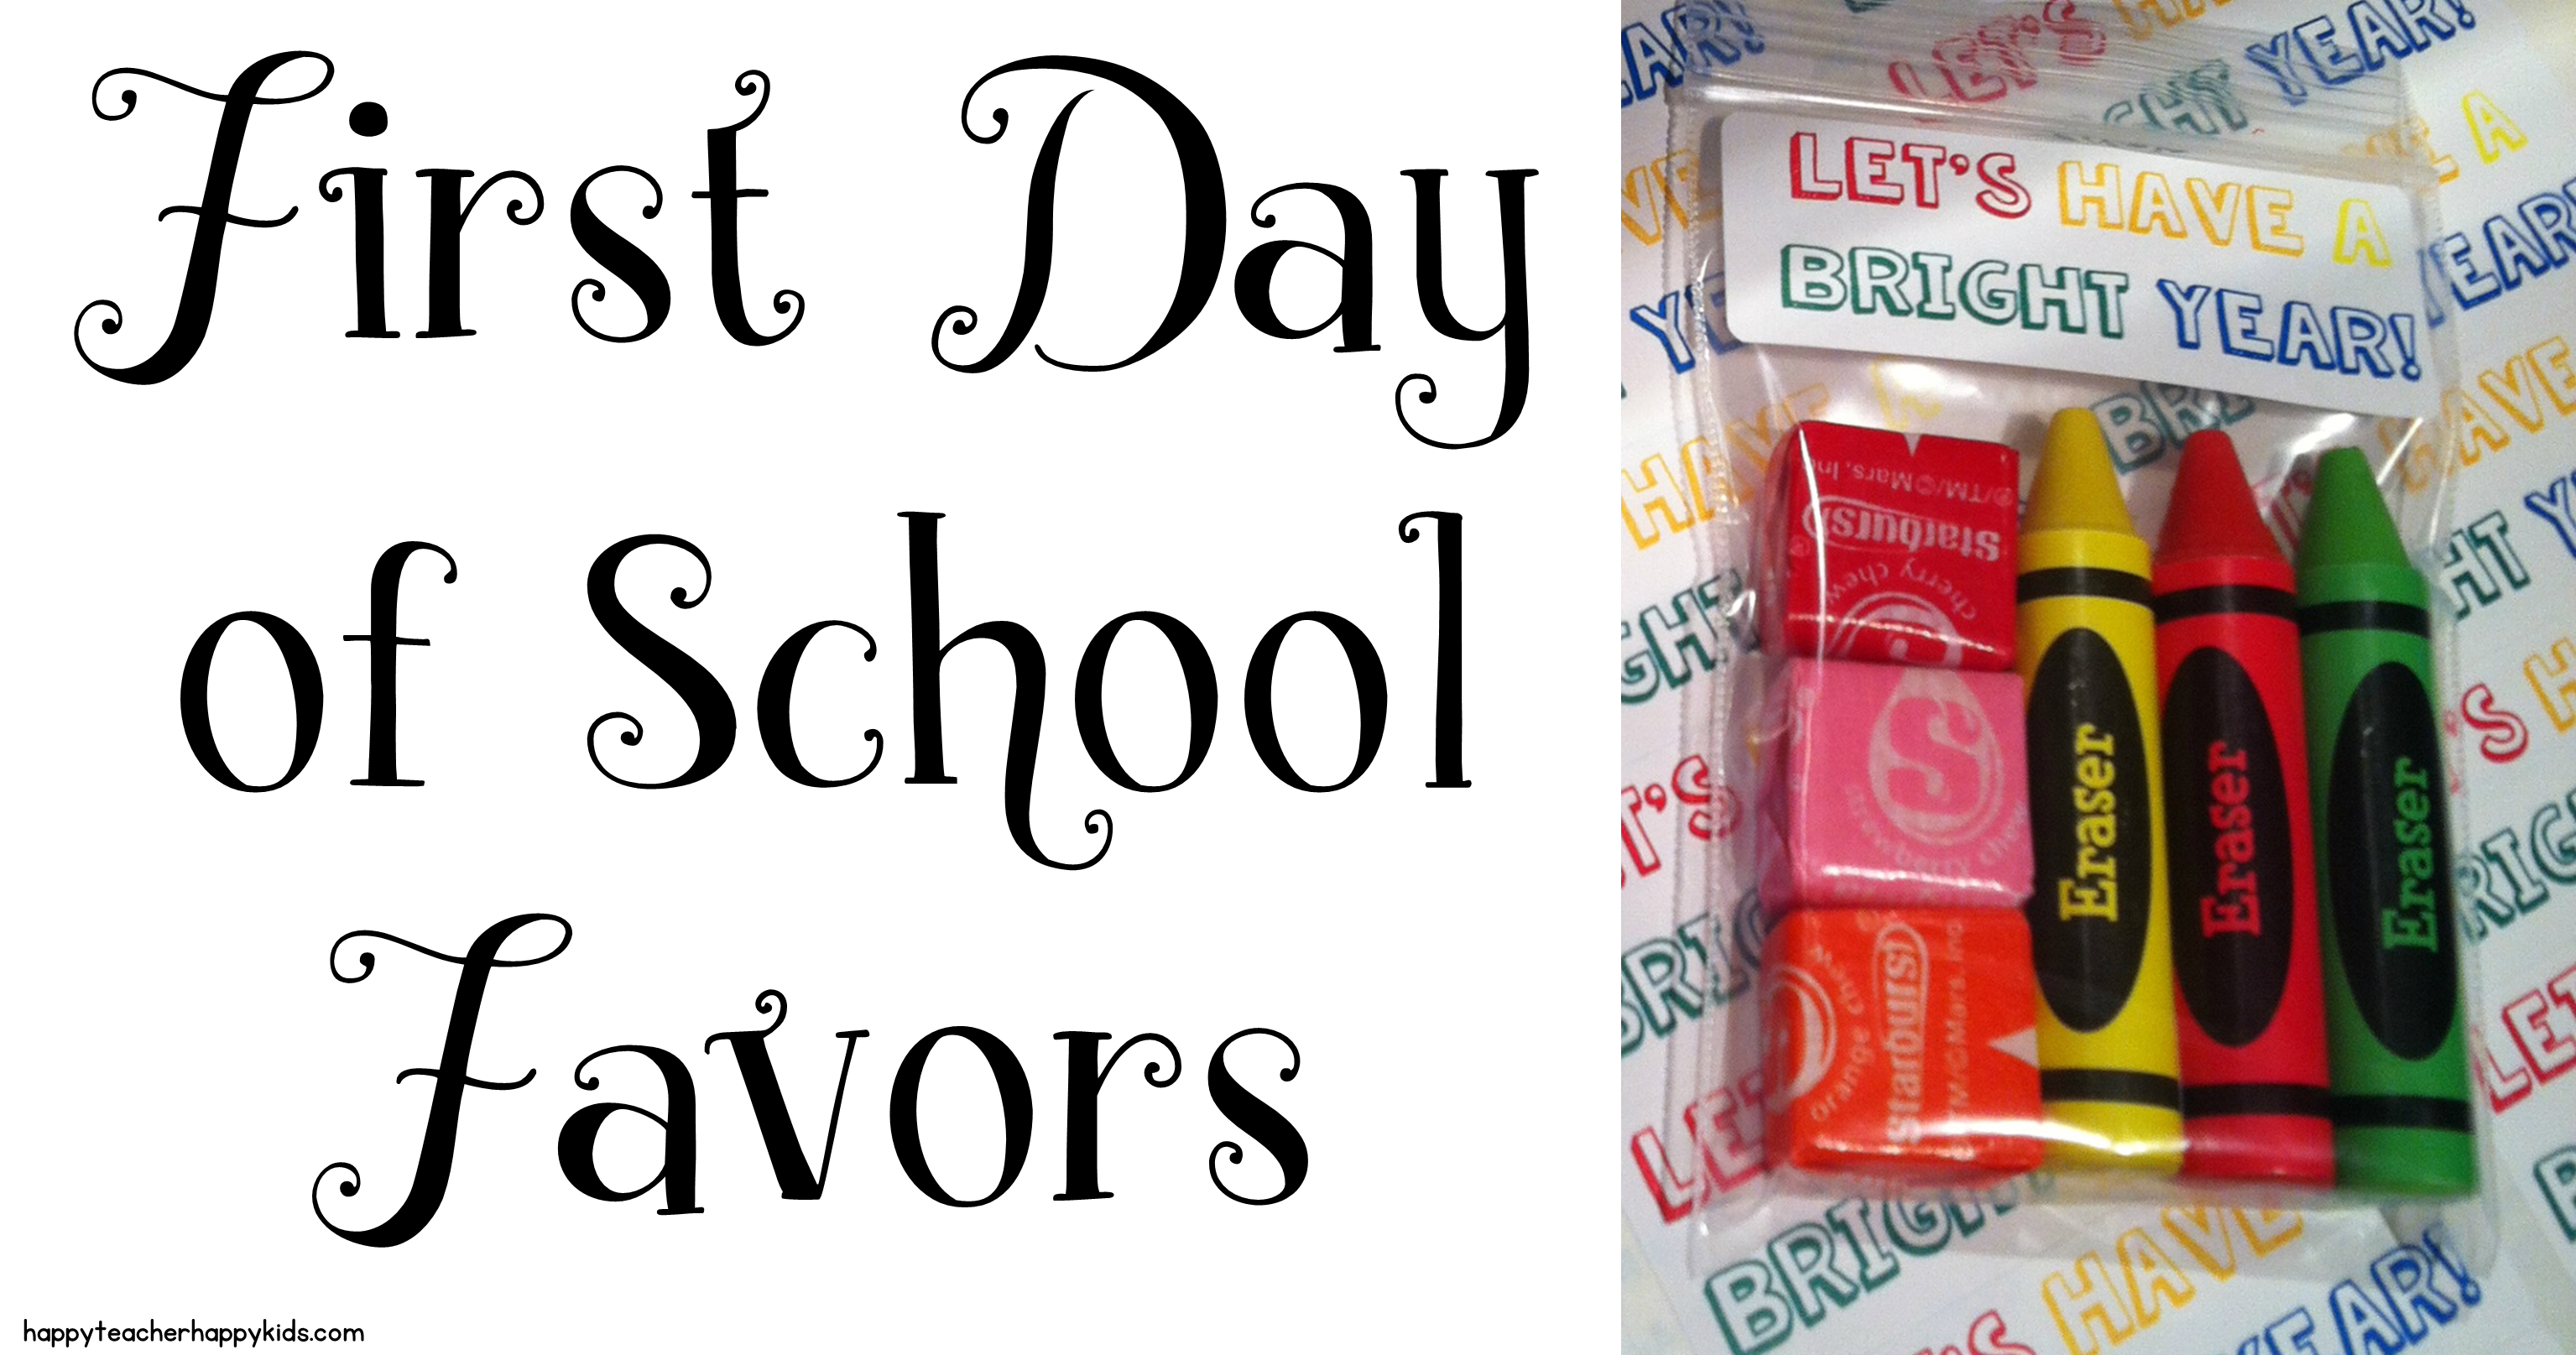 First Day of School Treats for Students - Let's Have a